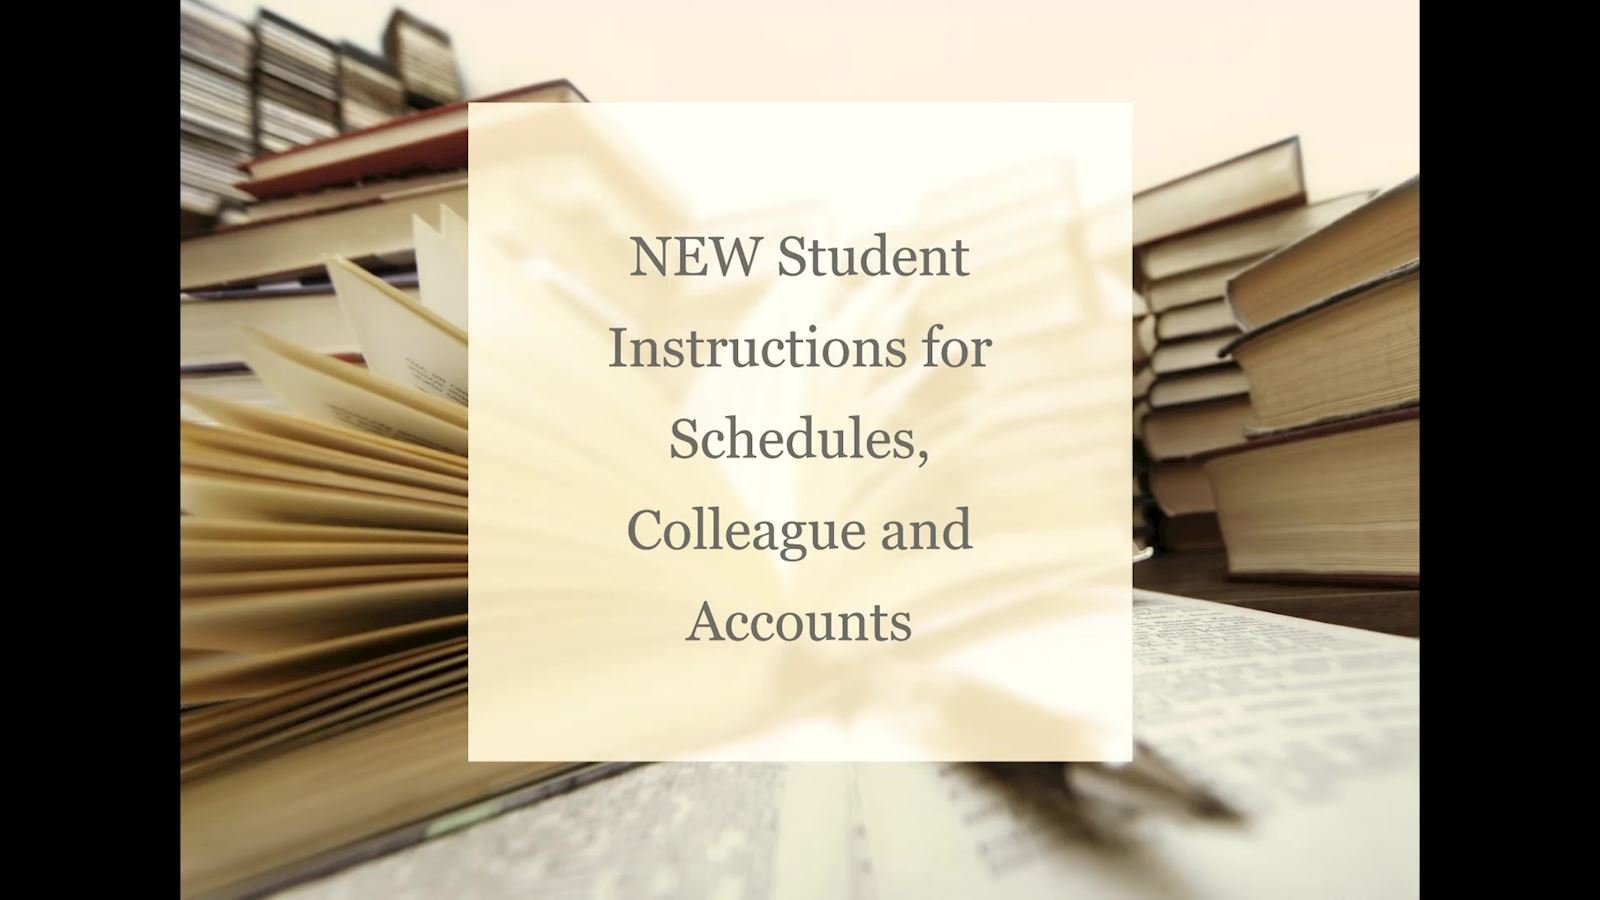 NEW Student Instructions for Schedules, Colleague, and Accounts